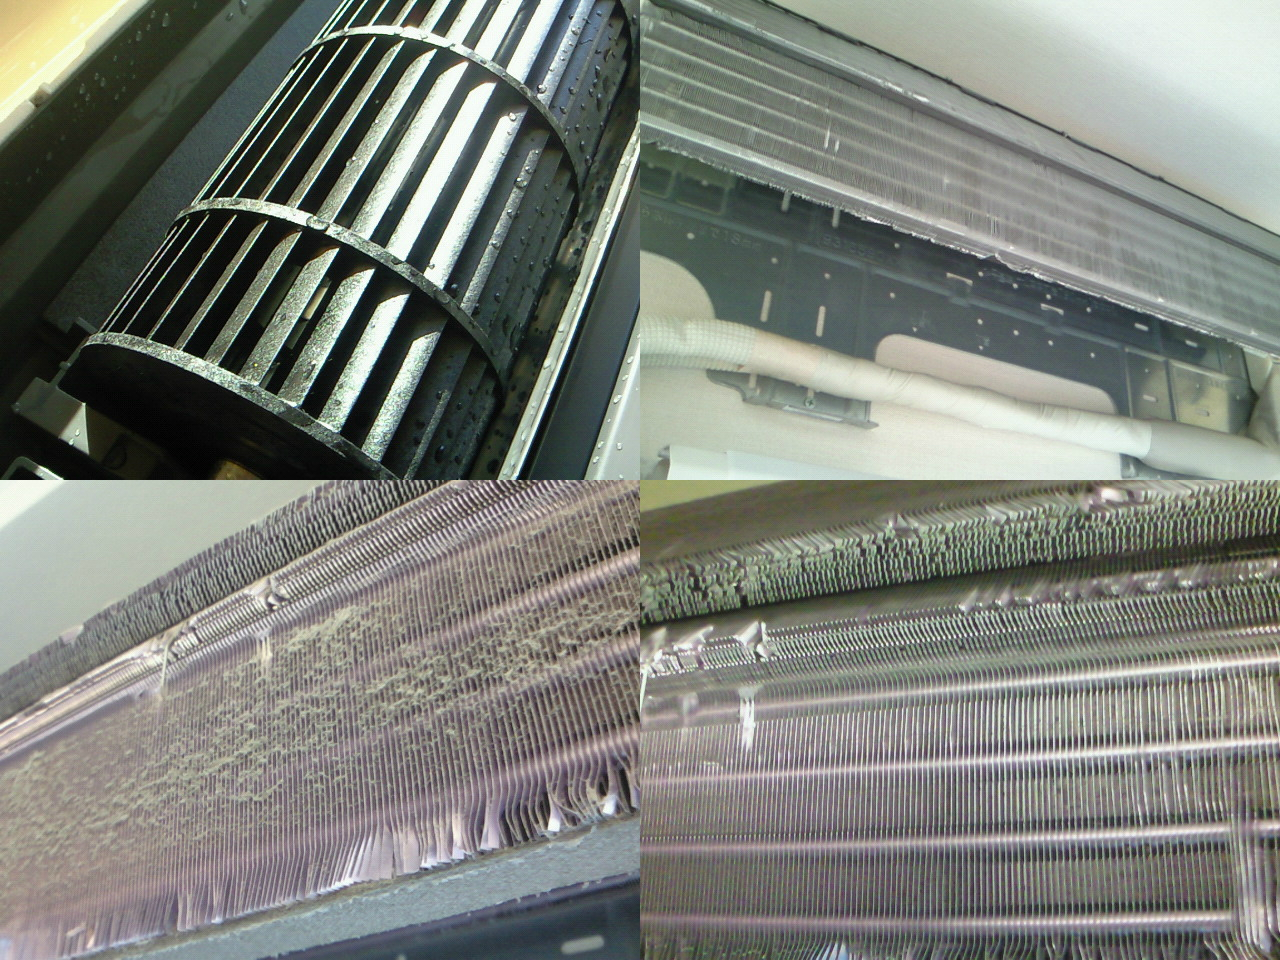 http://ajras.net/images/120104-aircon.jpg